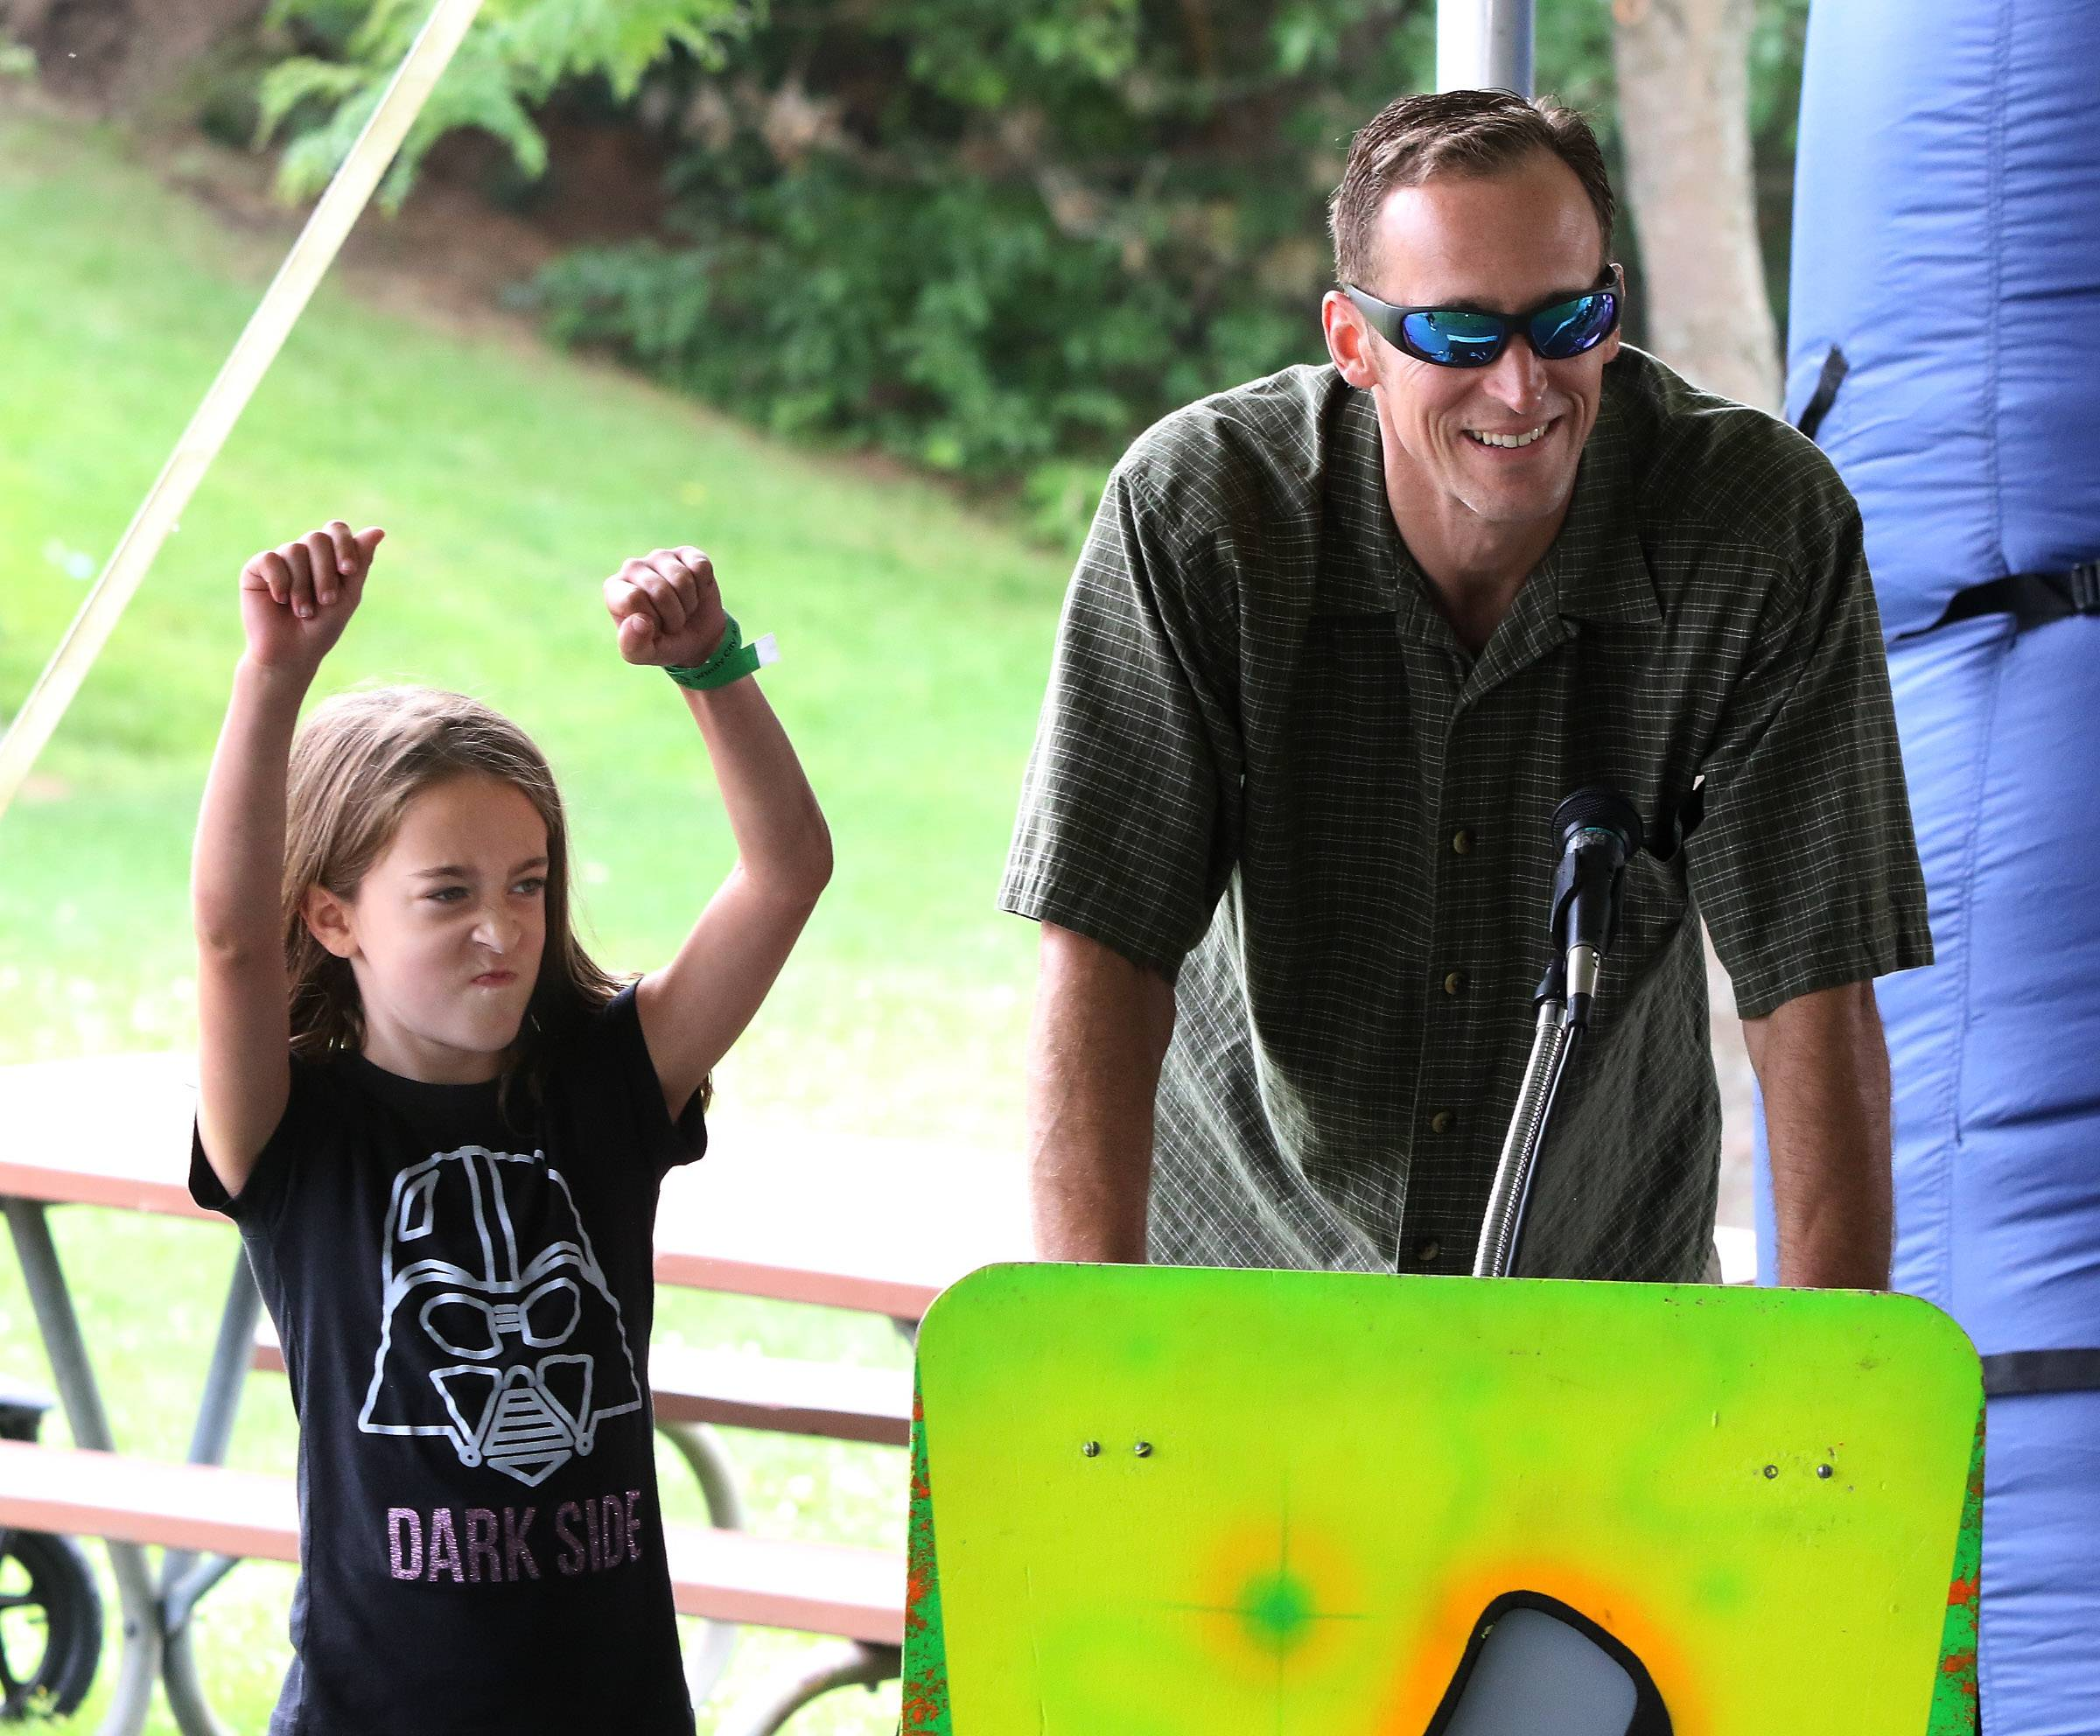 Morgan Straza, 8, of Vernon Hills celebrates with his father, Dave, after winning High Energy Trivia on Sunday, the last day of the Vernon Hills' Summer Celebration at Century Park.